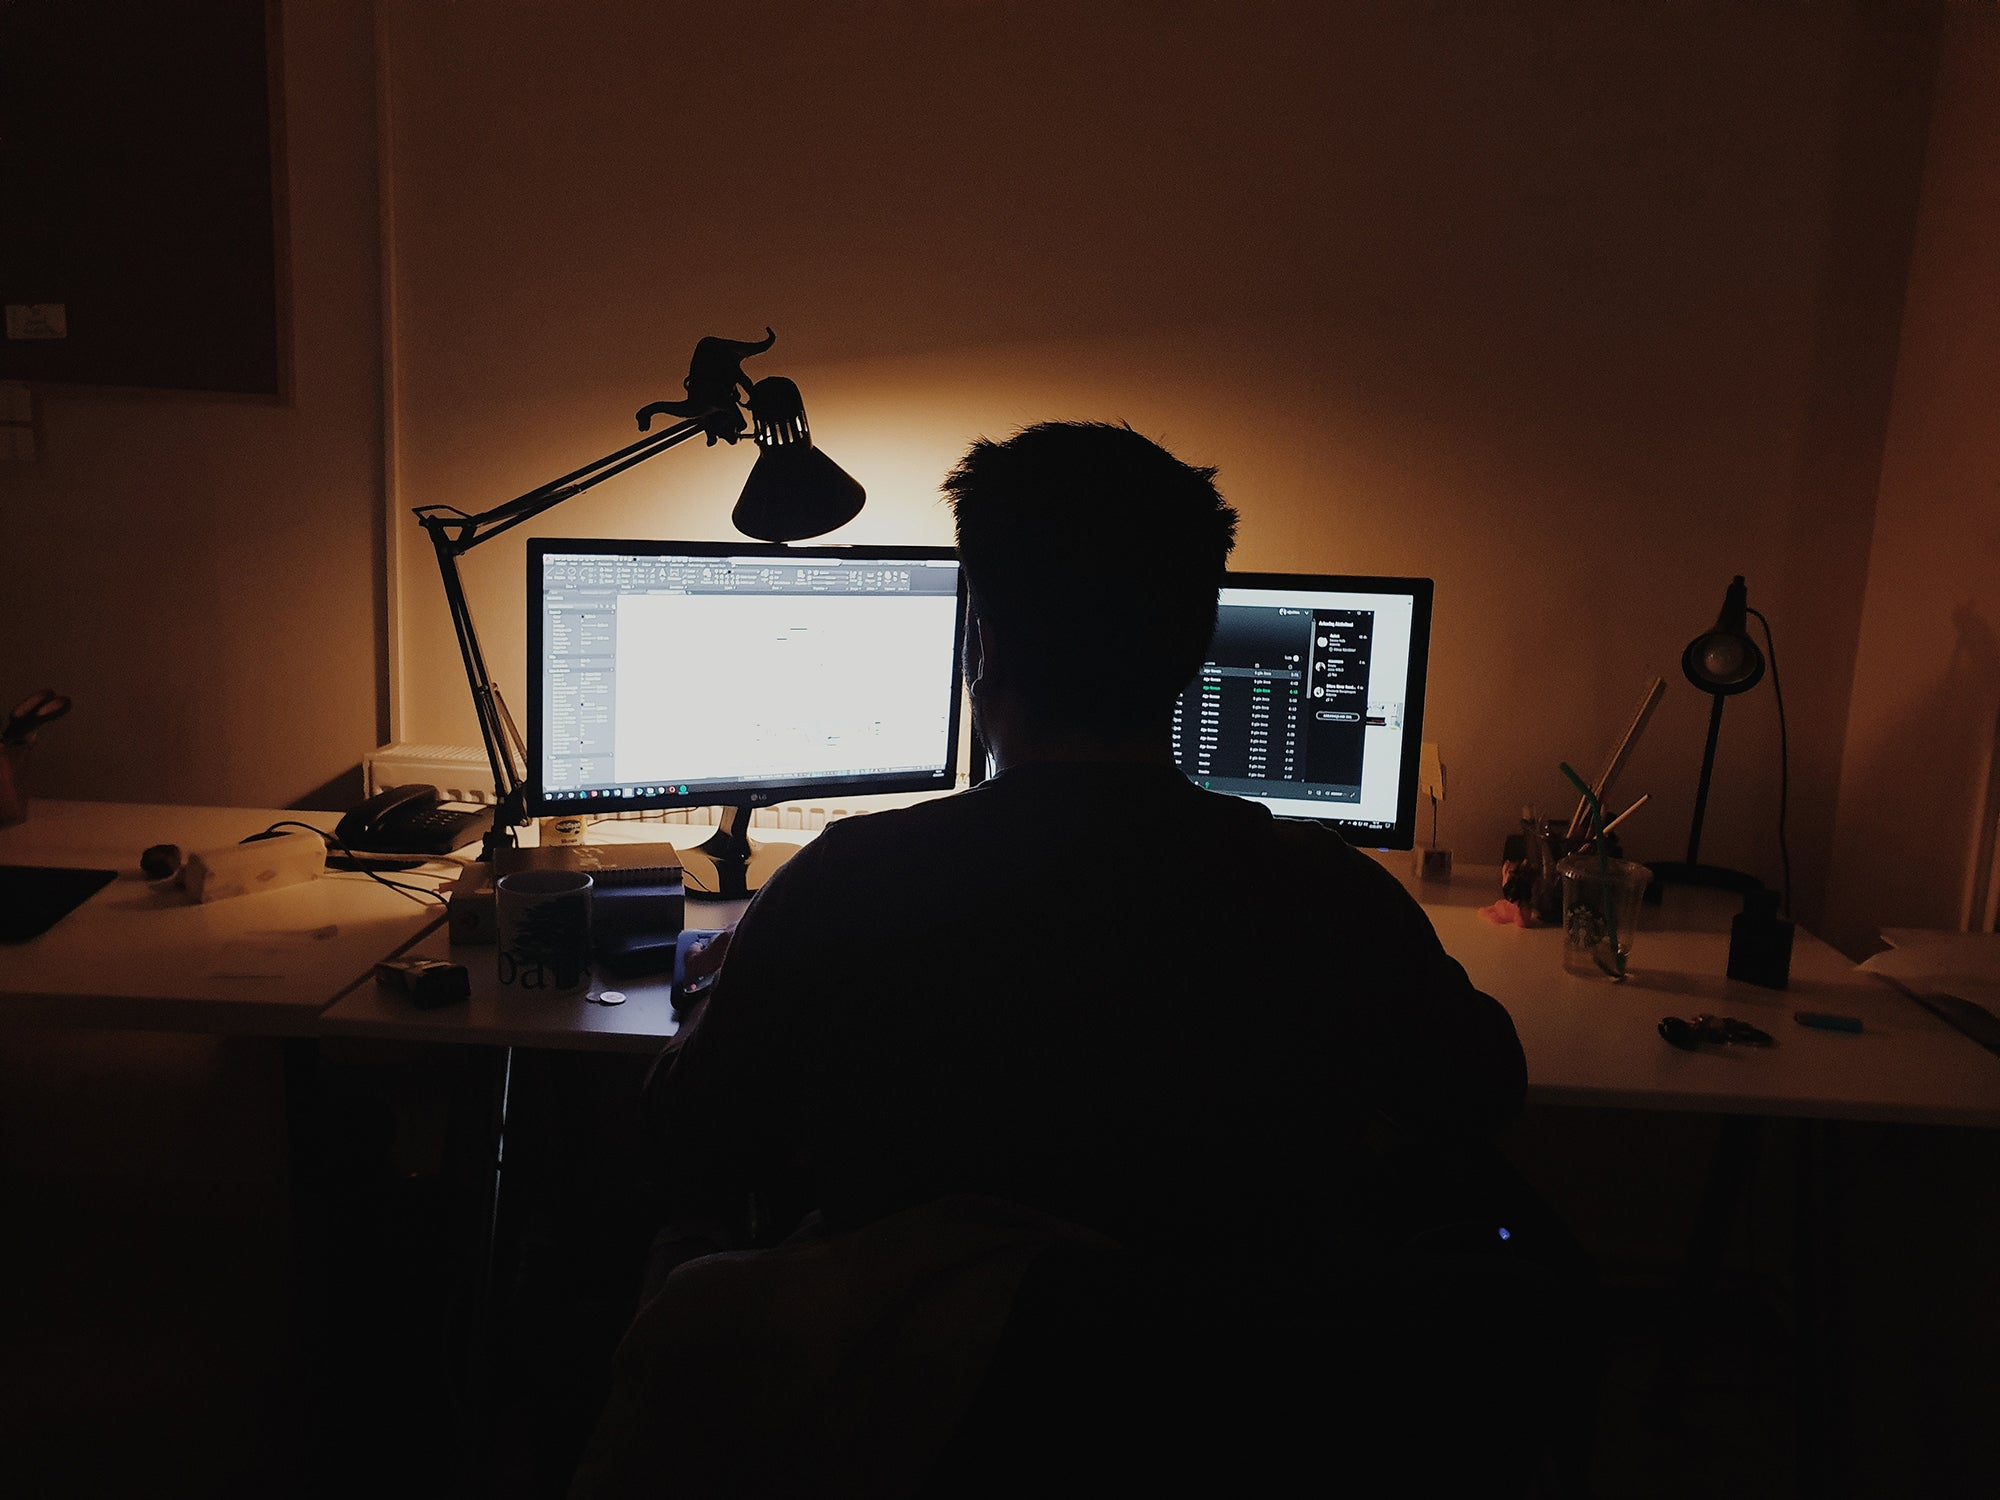 person sitting in a dark room with a lamp and two computer monitors on a desk